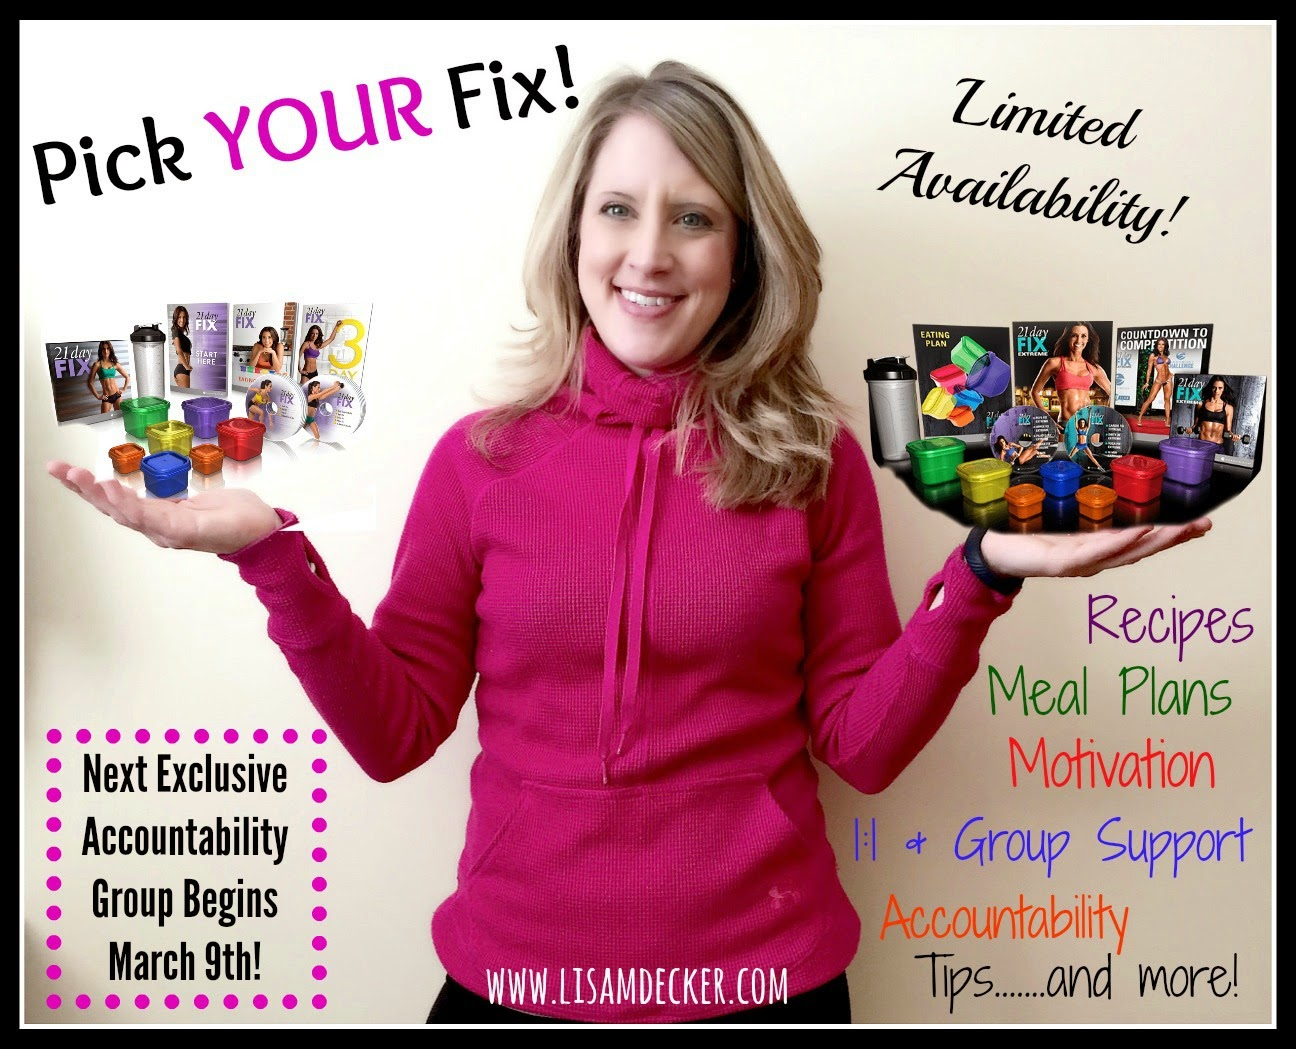 21 Day Fix Extreme, 21 Day Fix, 21 Day Fix Workouts, 21 Day Fix Extreme Workouts, 21 Day Fix Extreme Meal Plan, Meal Planning